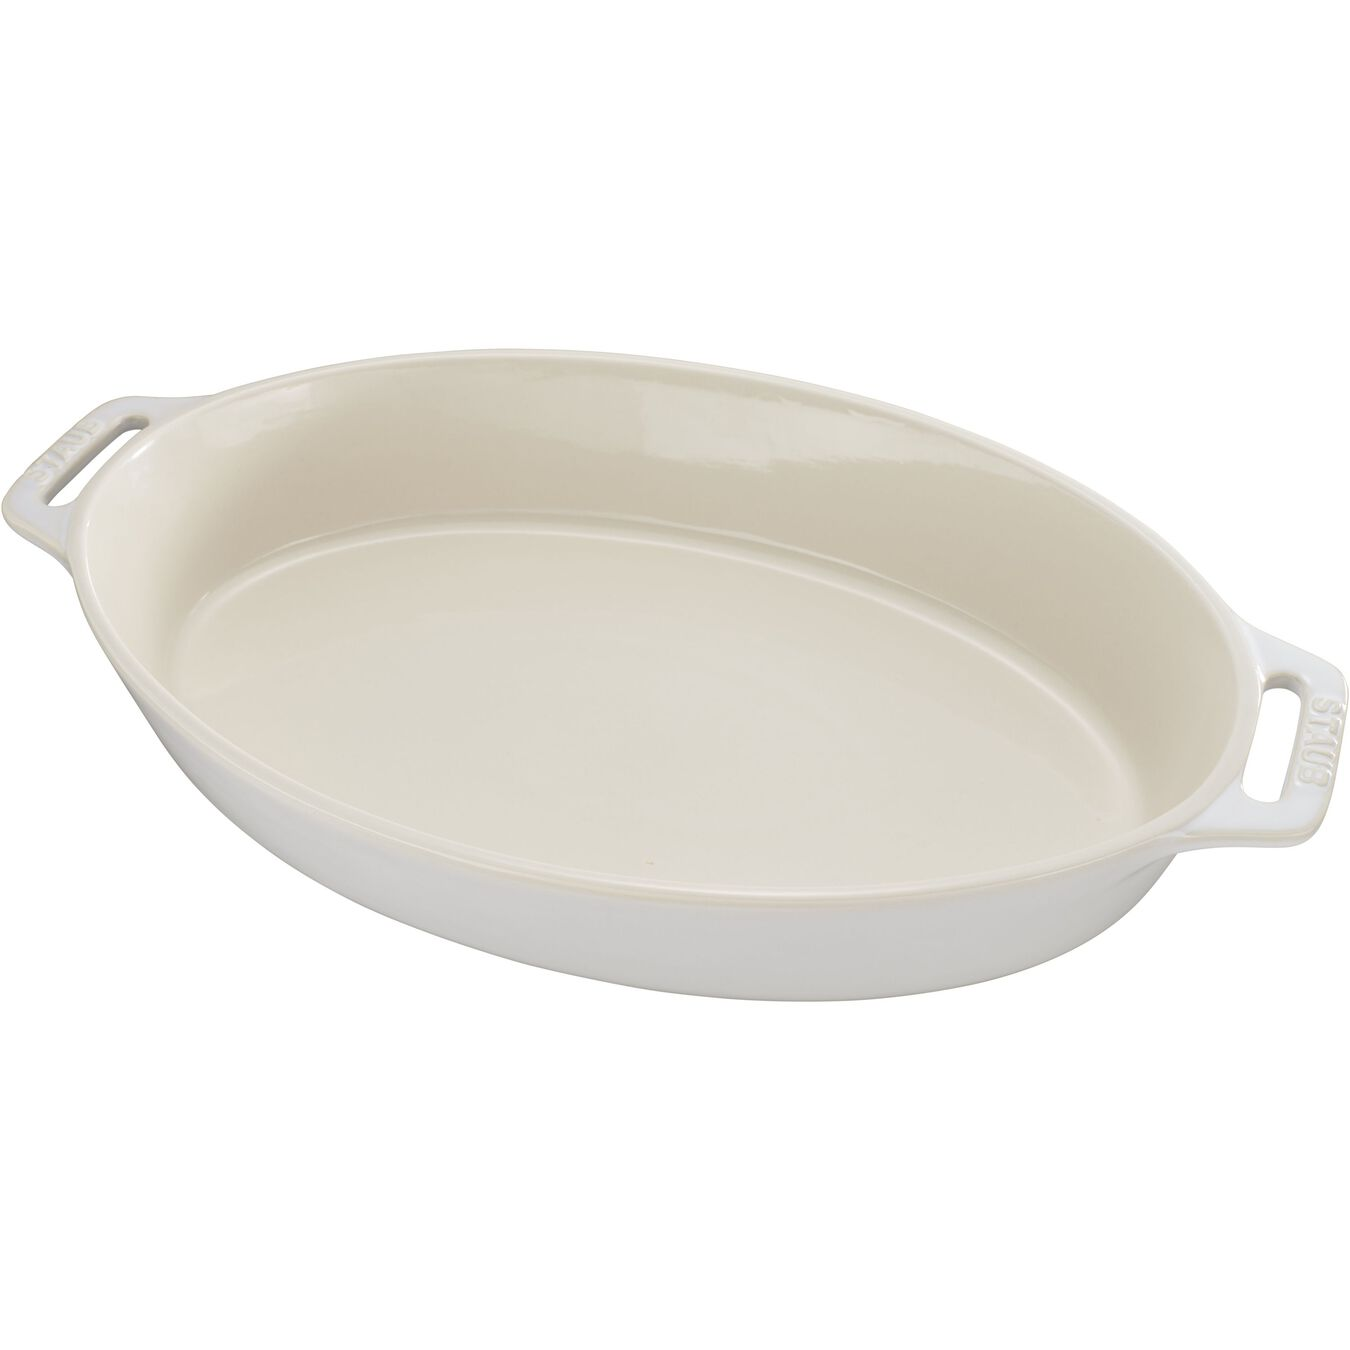 9-inch Oval Baking Dish - Rustic Ivory,,large 1